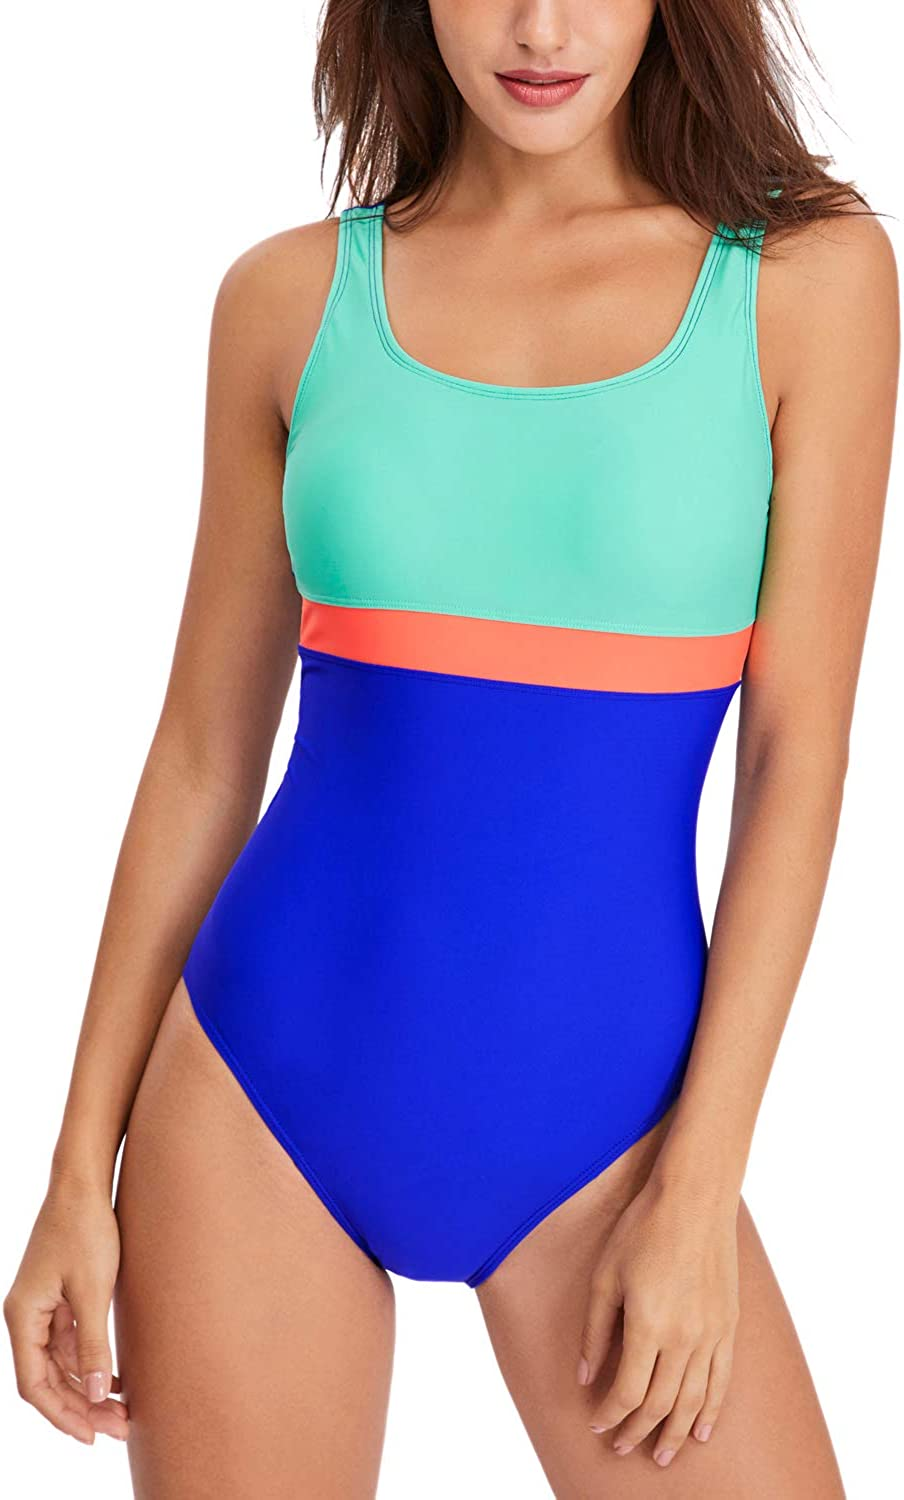 HAIVIDO Women's Athletic One Piece Swimsuits Racing Training Sports Bathing Suit Color Block Swimwear